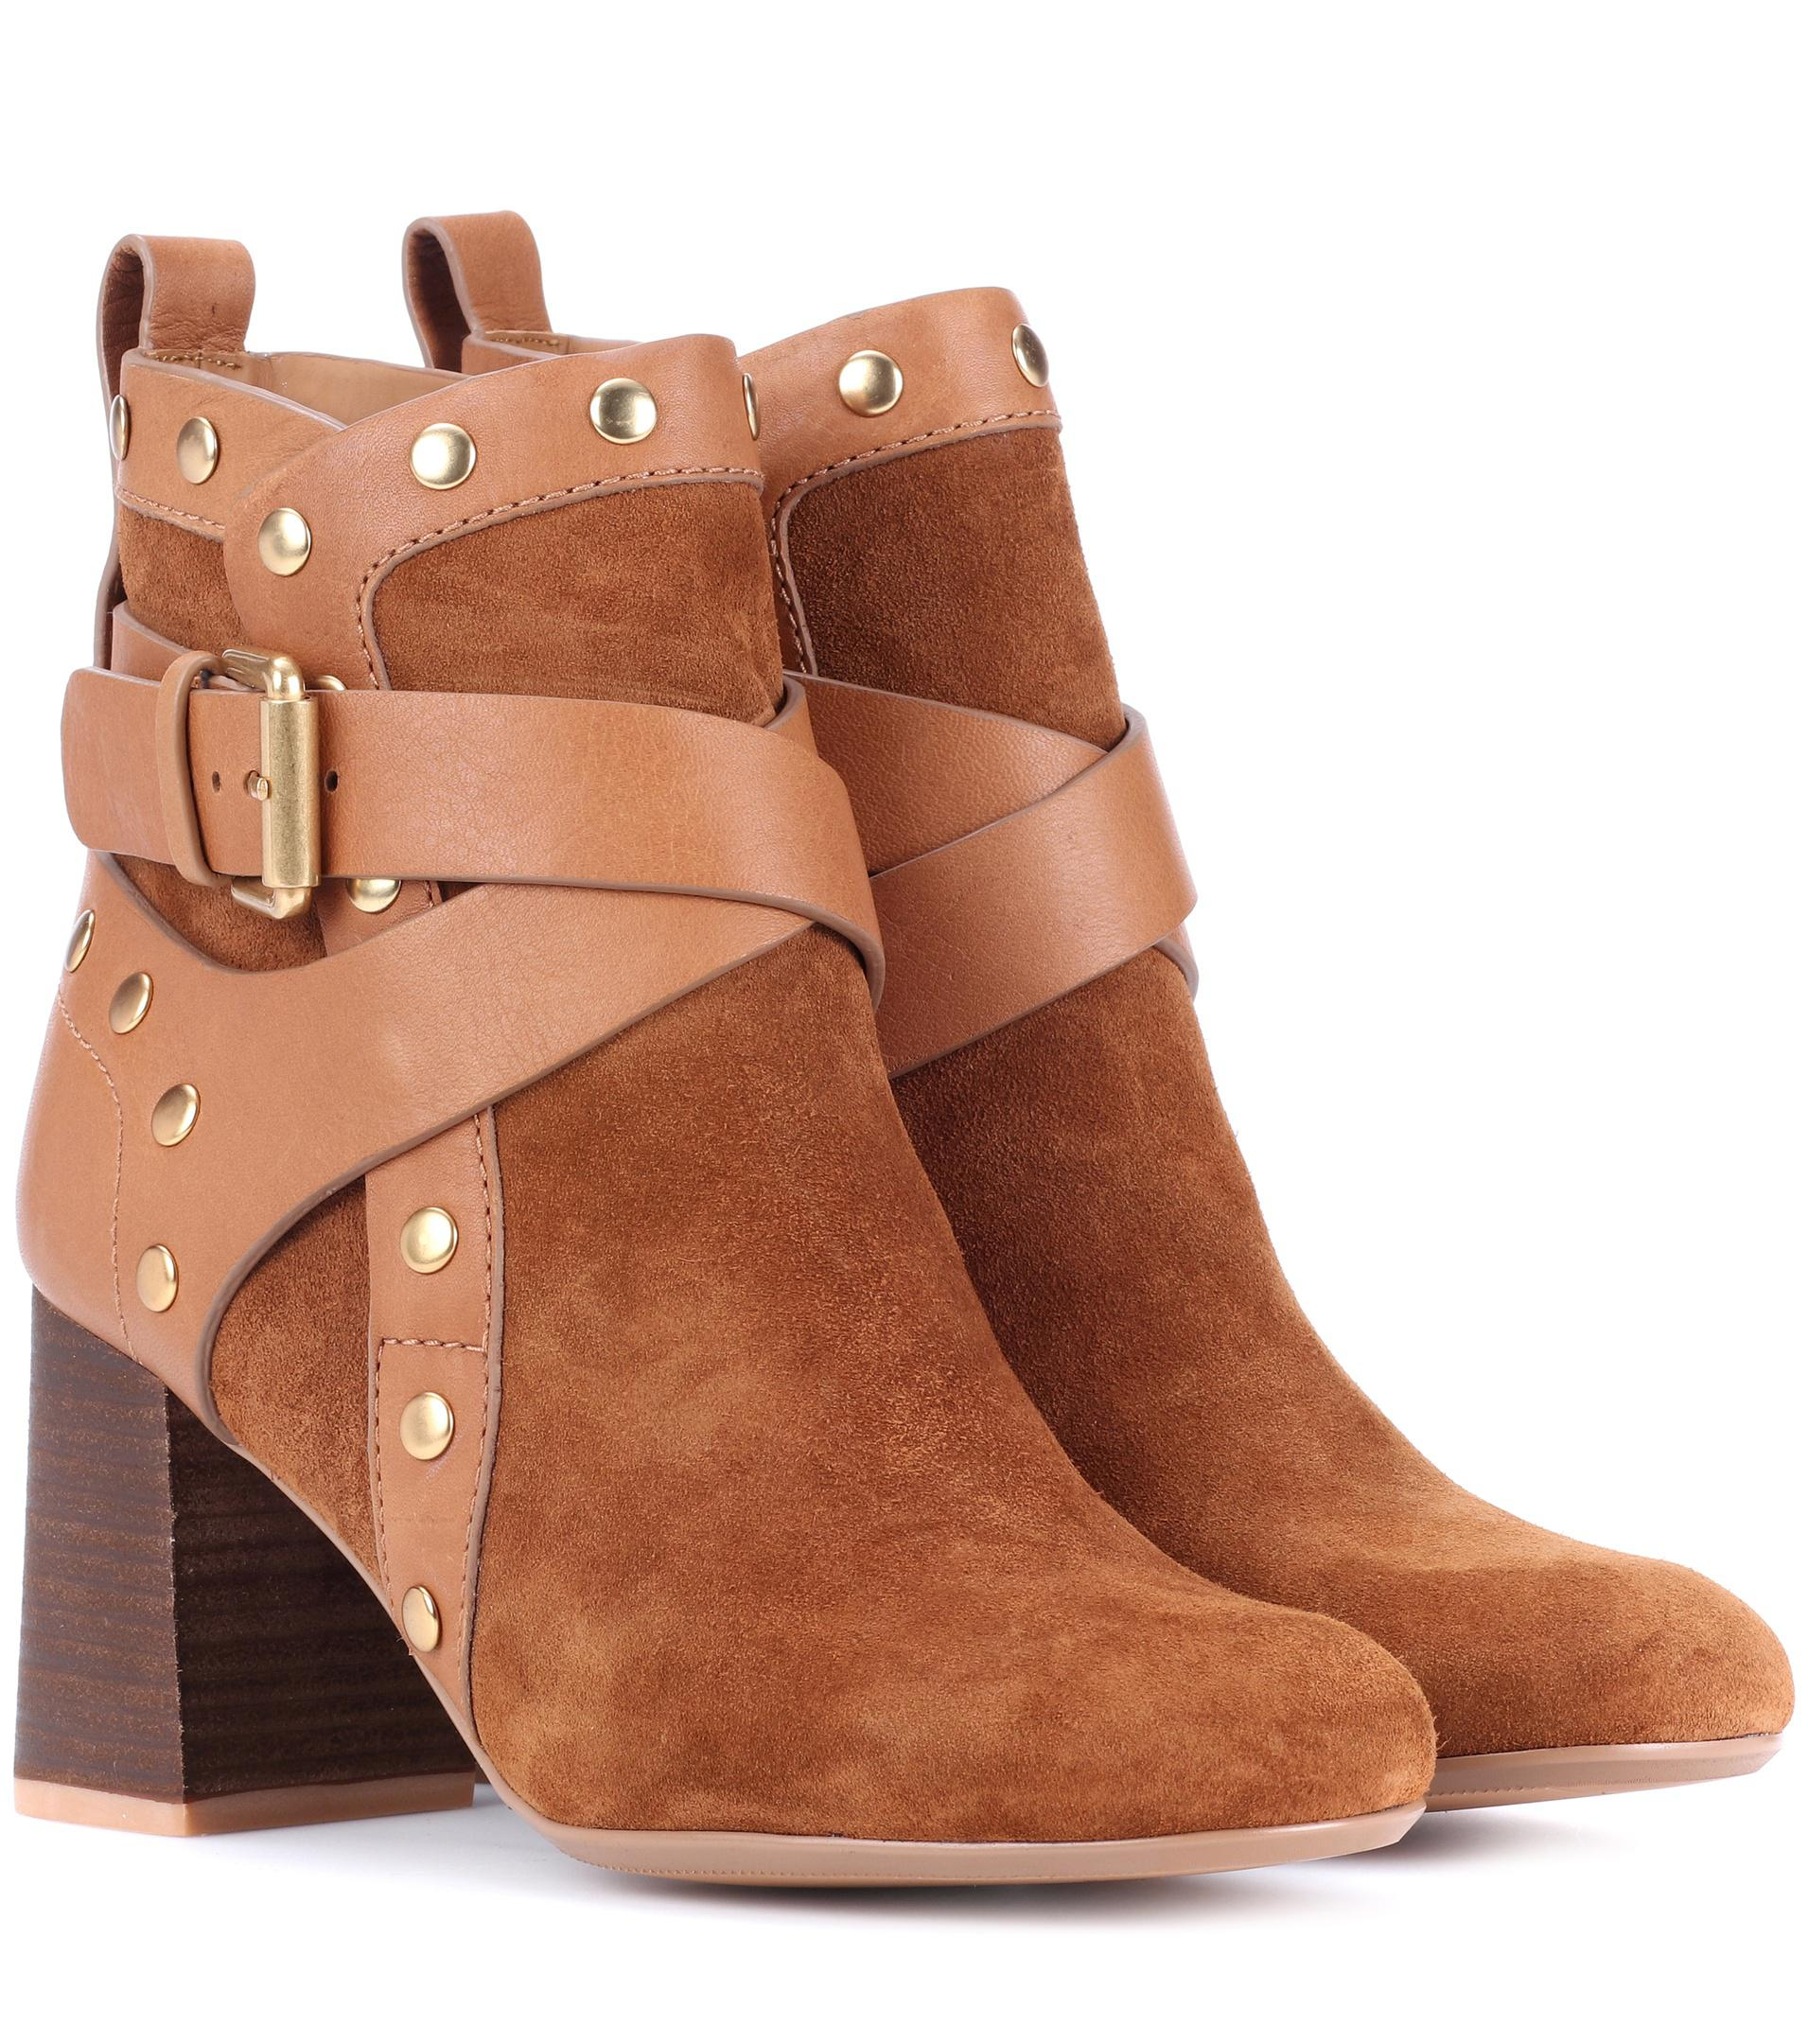 Chloé 40MM SUEDE ANKLE BOOTS Wholesale Quality Official Cheap Online Perfect Online Very Cheap Online X2KZ5